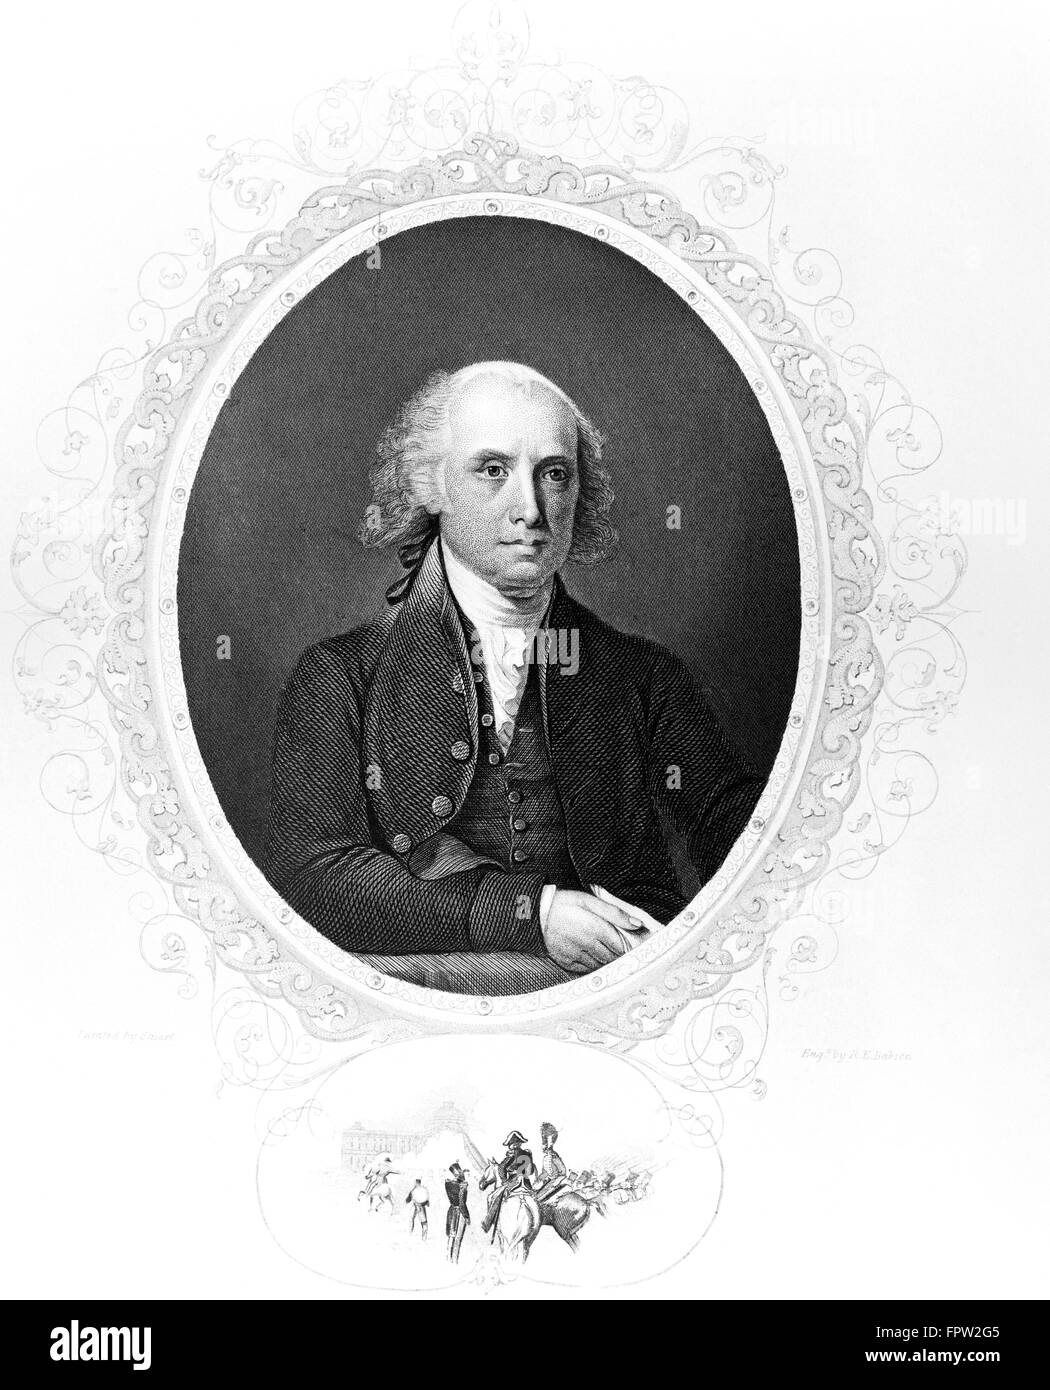 1800s PORTRAIT JAMES MADISON 1751-1836 4th FOURTH AMERICAN PRESIDENT FATHER OF THE CONSTITUTION WAR OF 1812 FEDERALIST - Stock Image